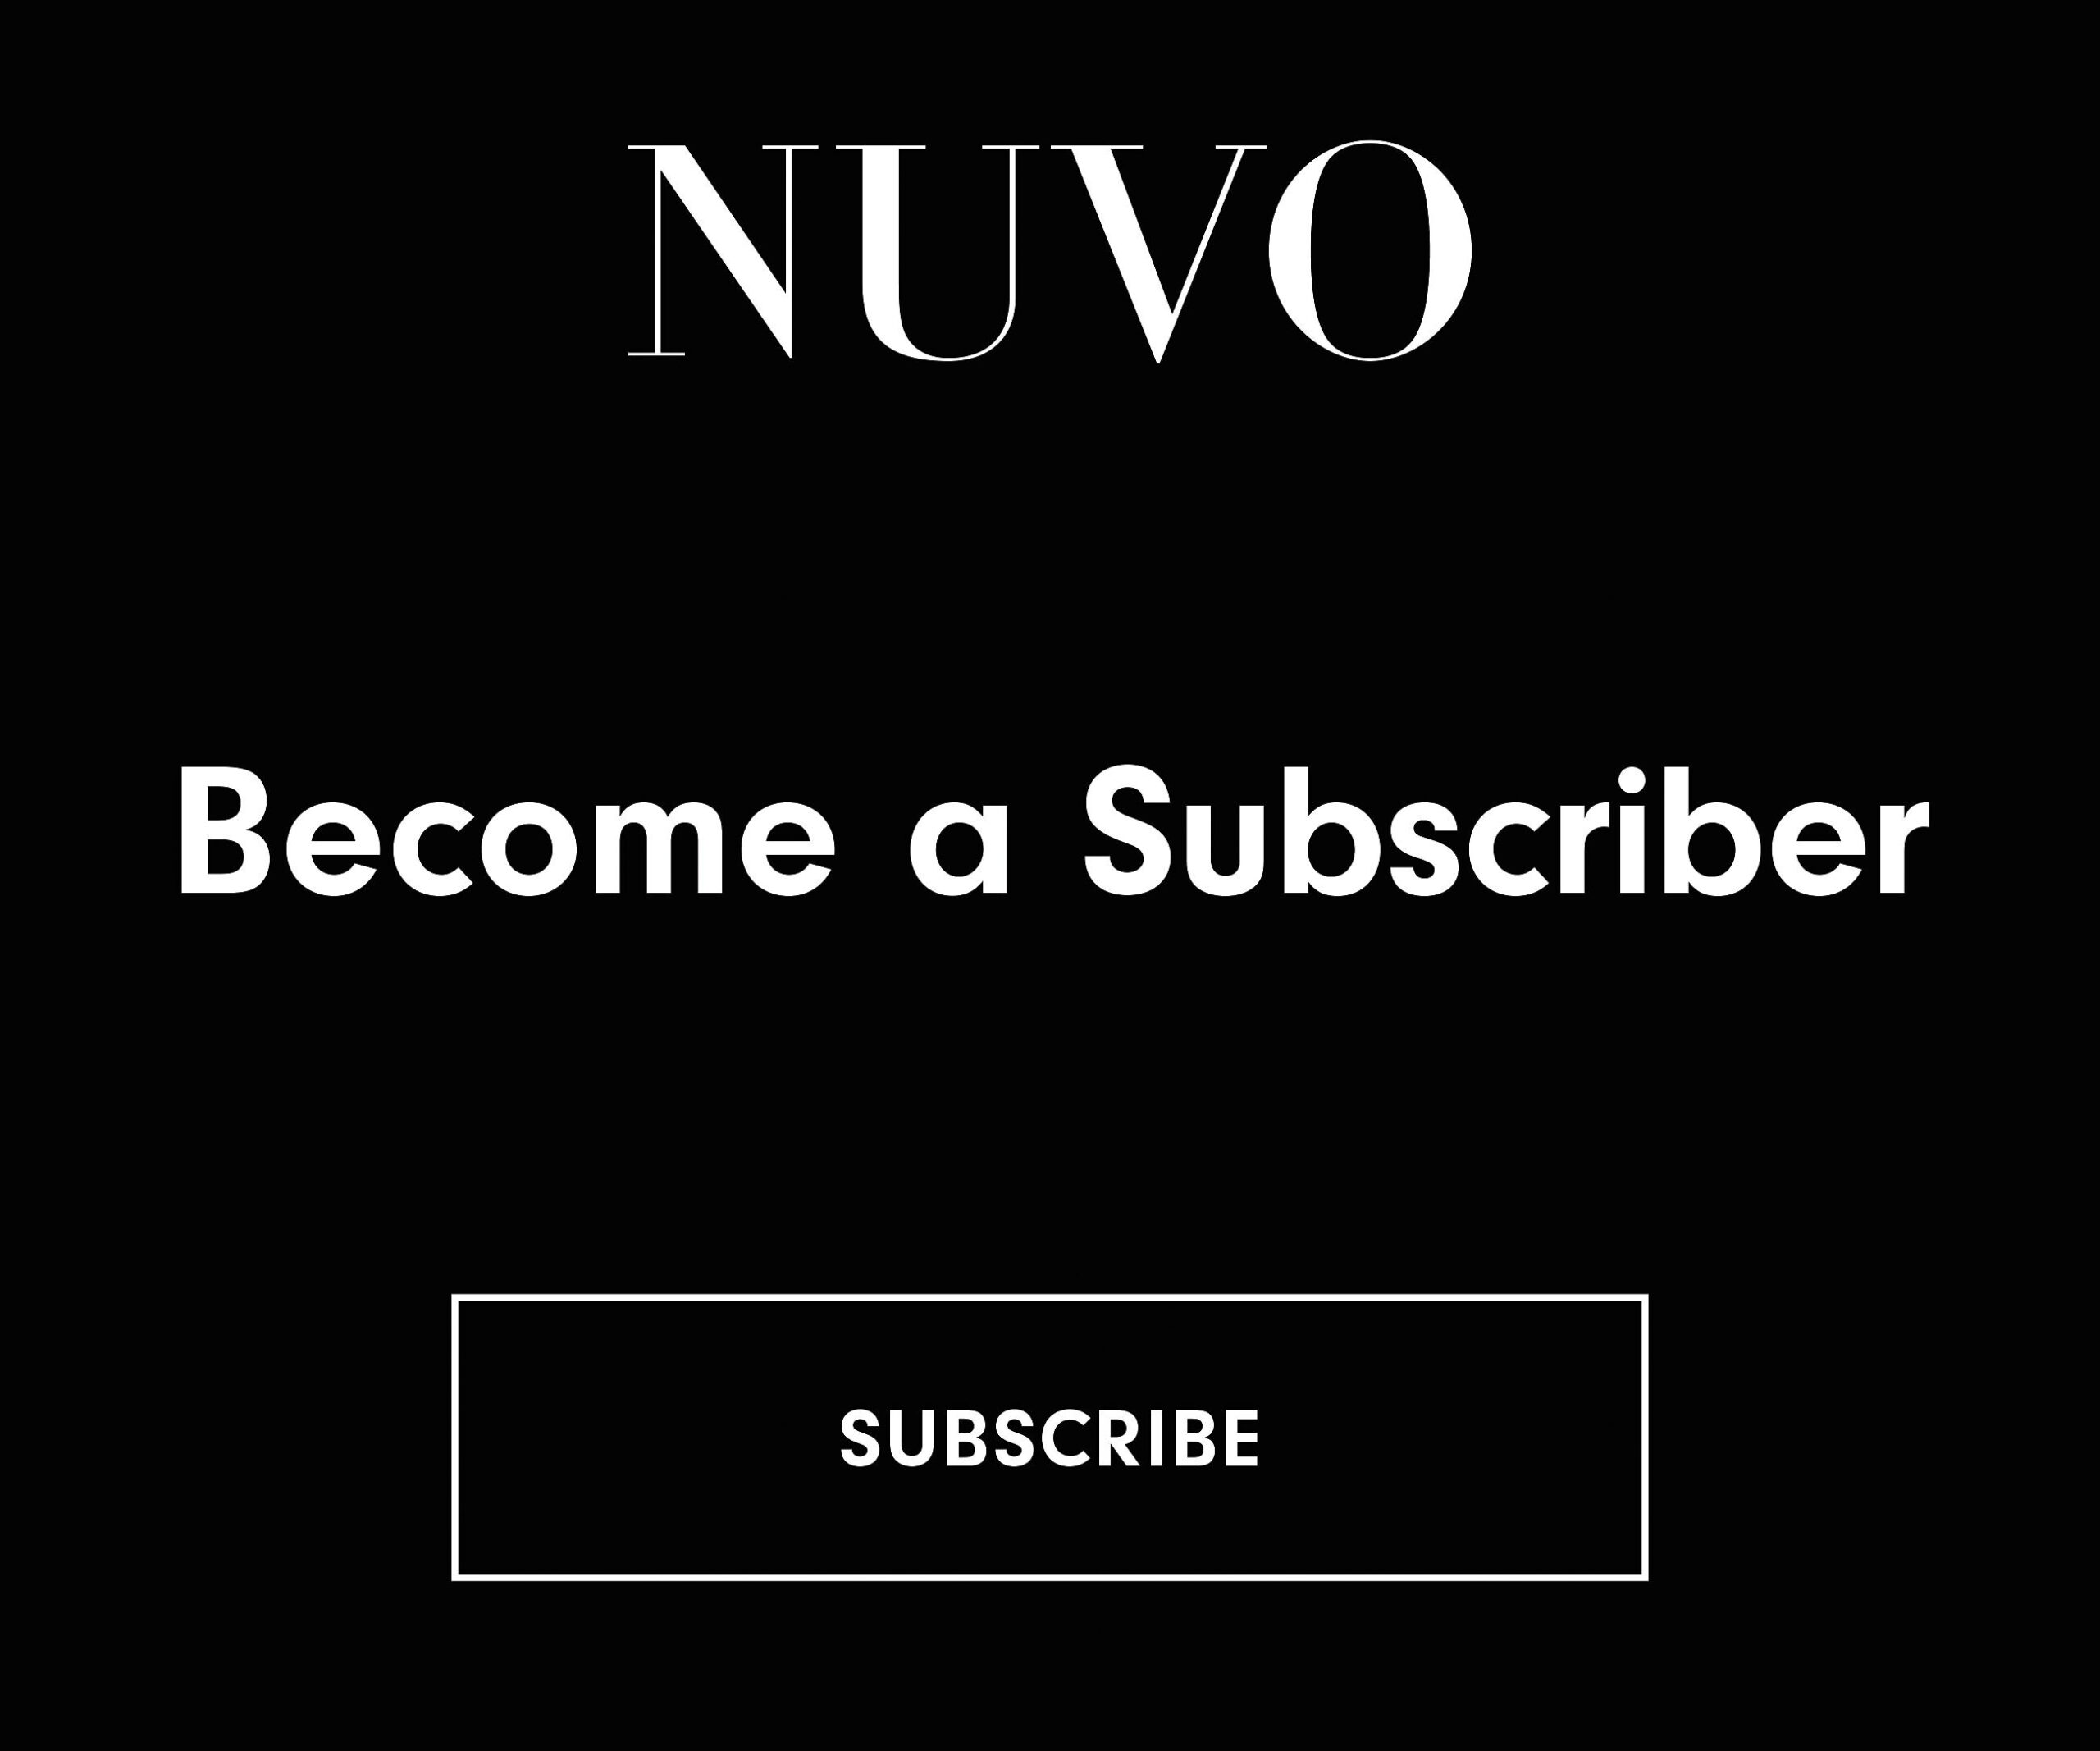 NUVO Subscribe